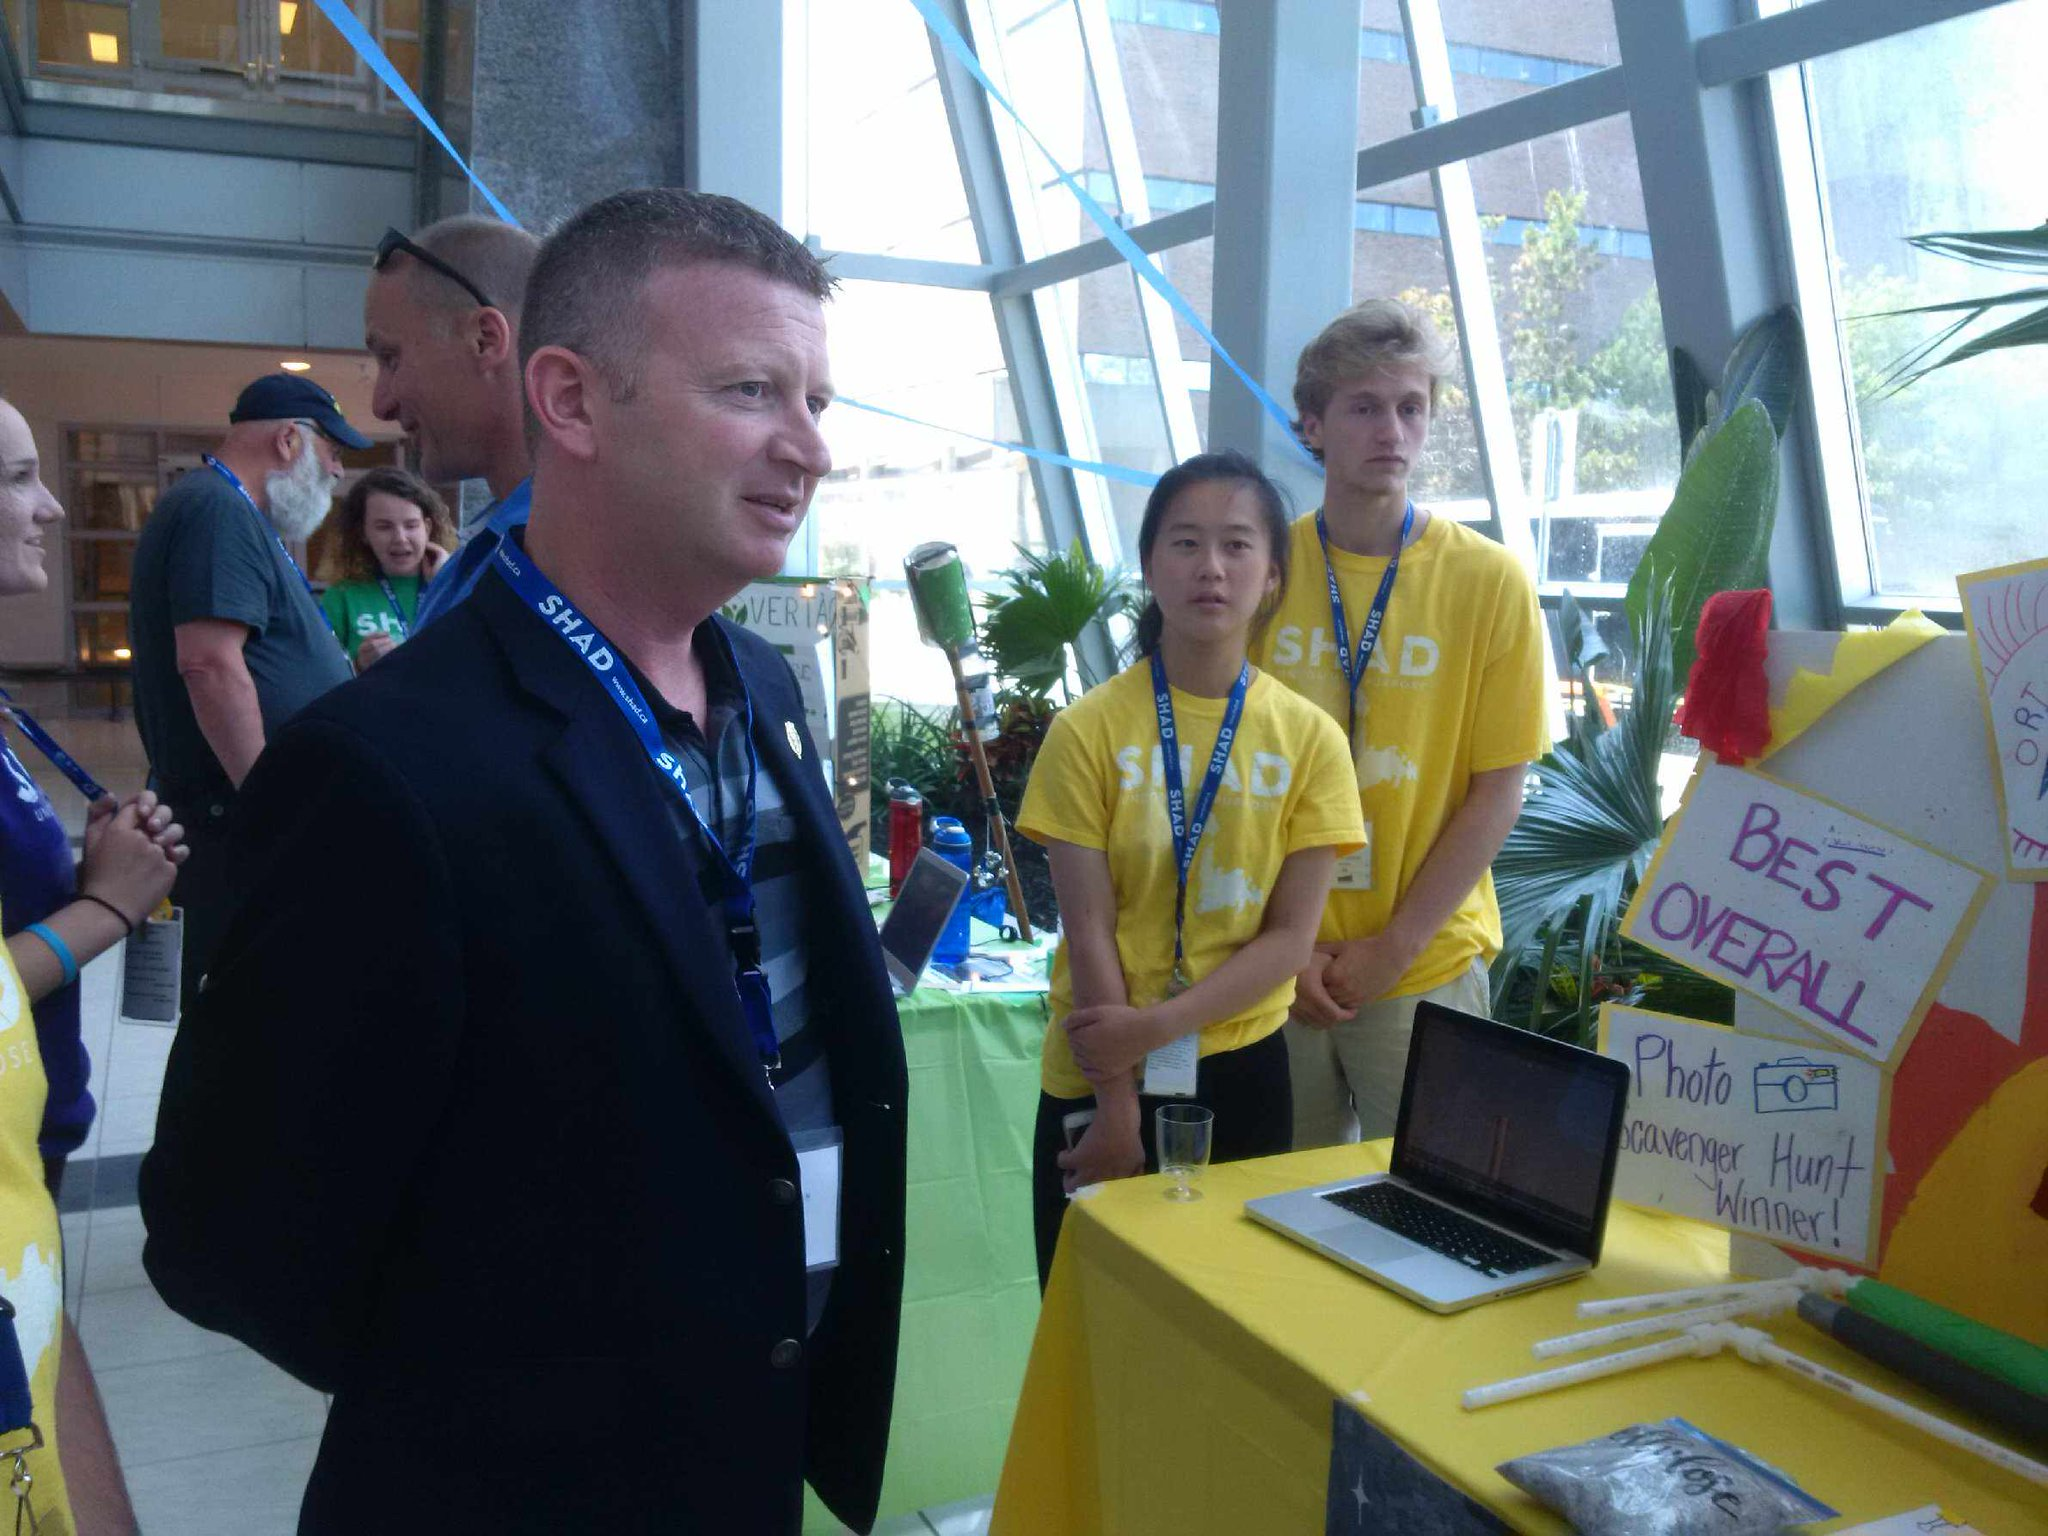 Minister Kirby @dalegkirby participates in Open House @SHAD_MUN #SHADOpen today @MemorialU  #SHAD2017 https://t.co/AMGzZQPsn5